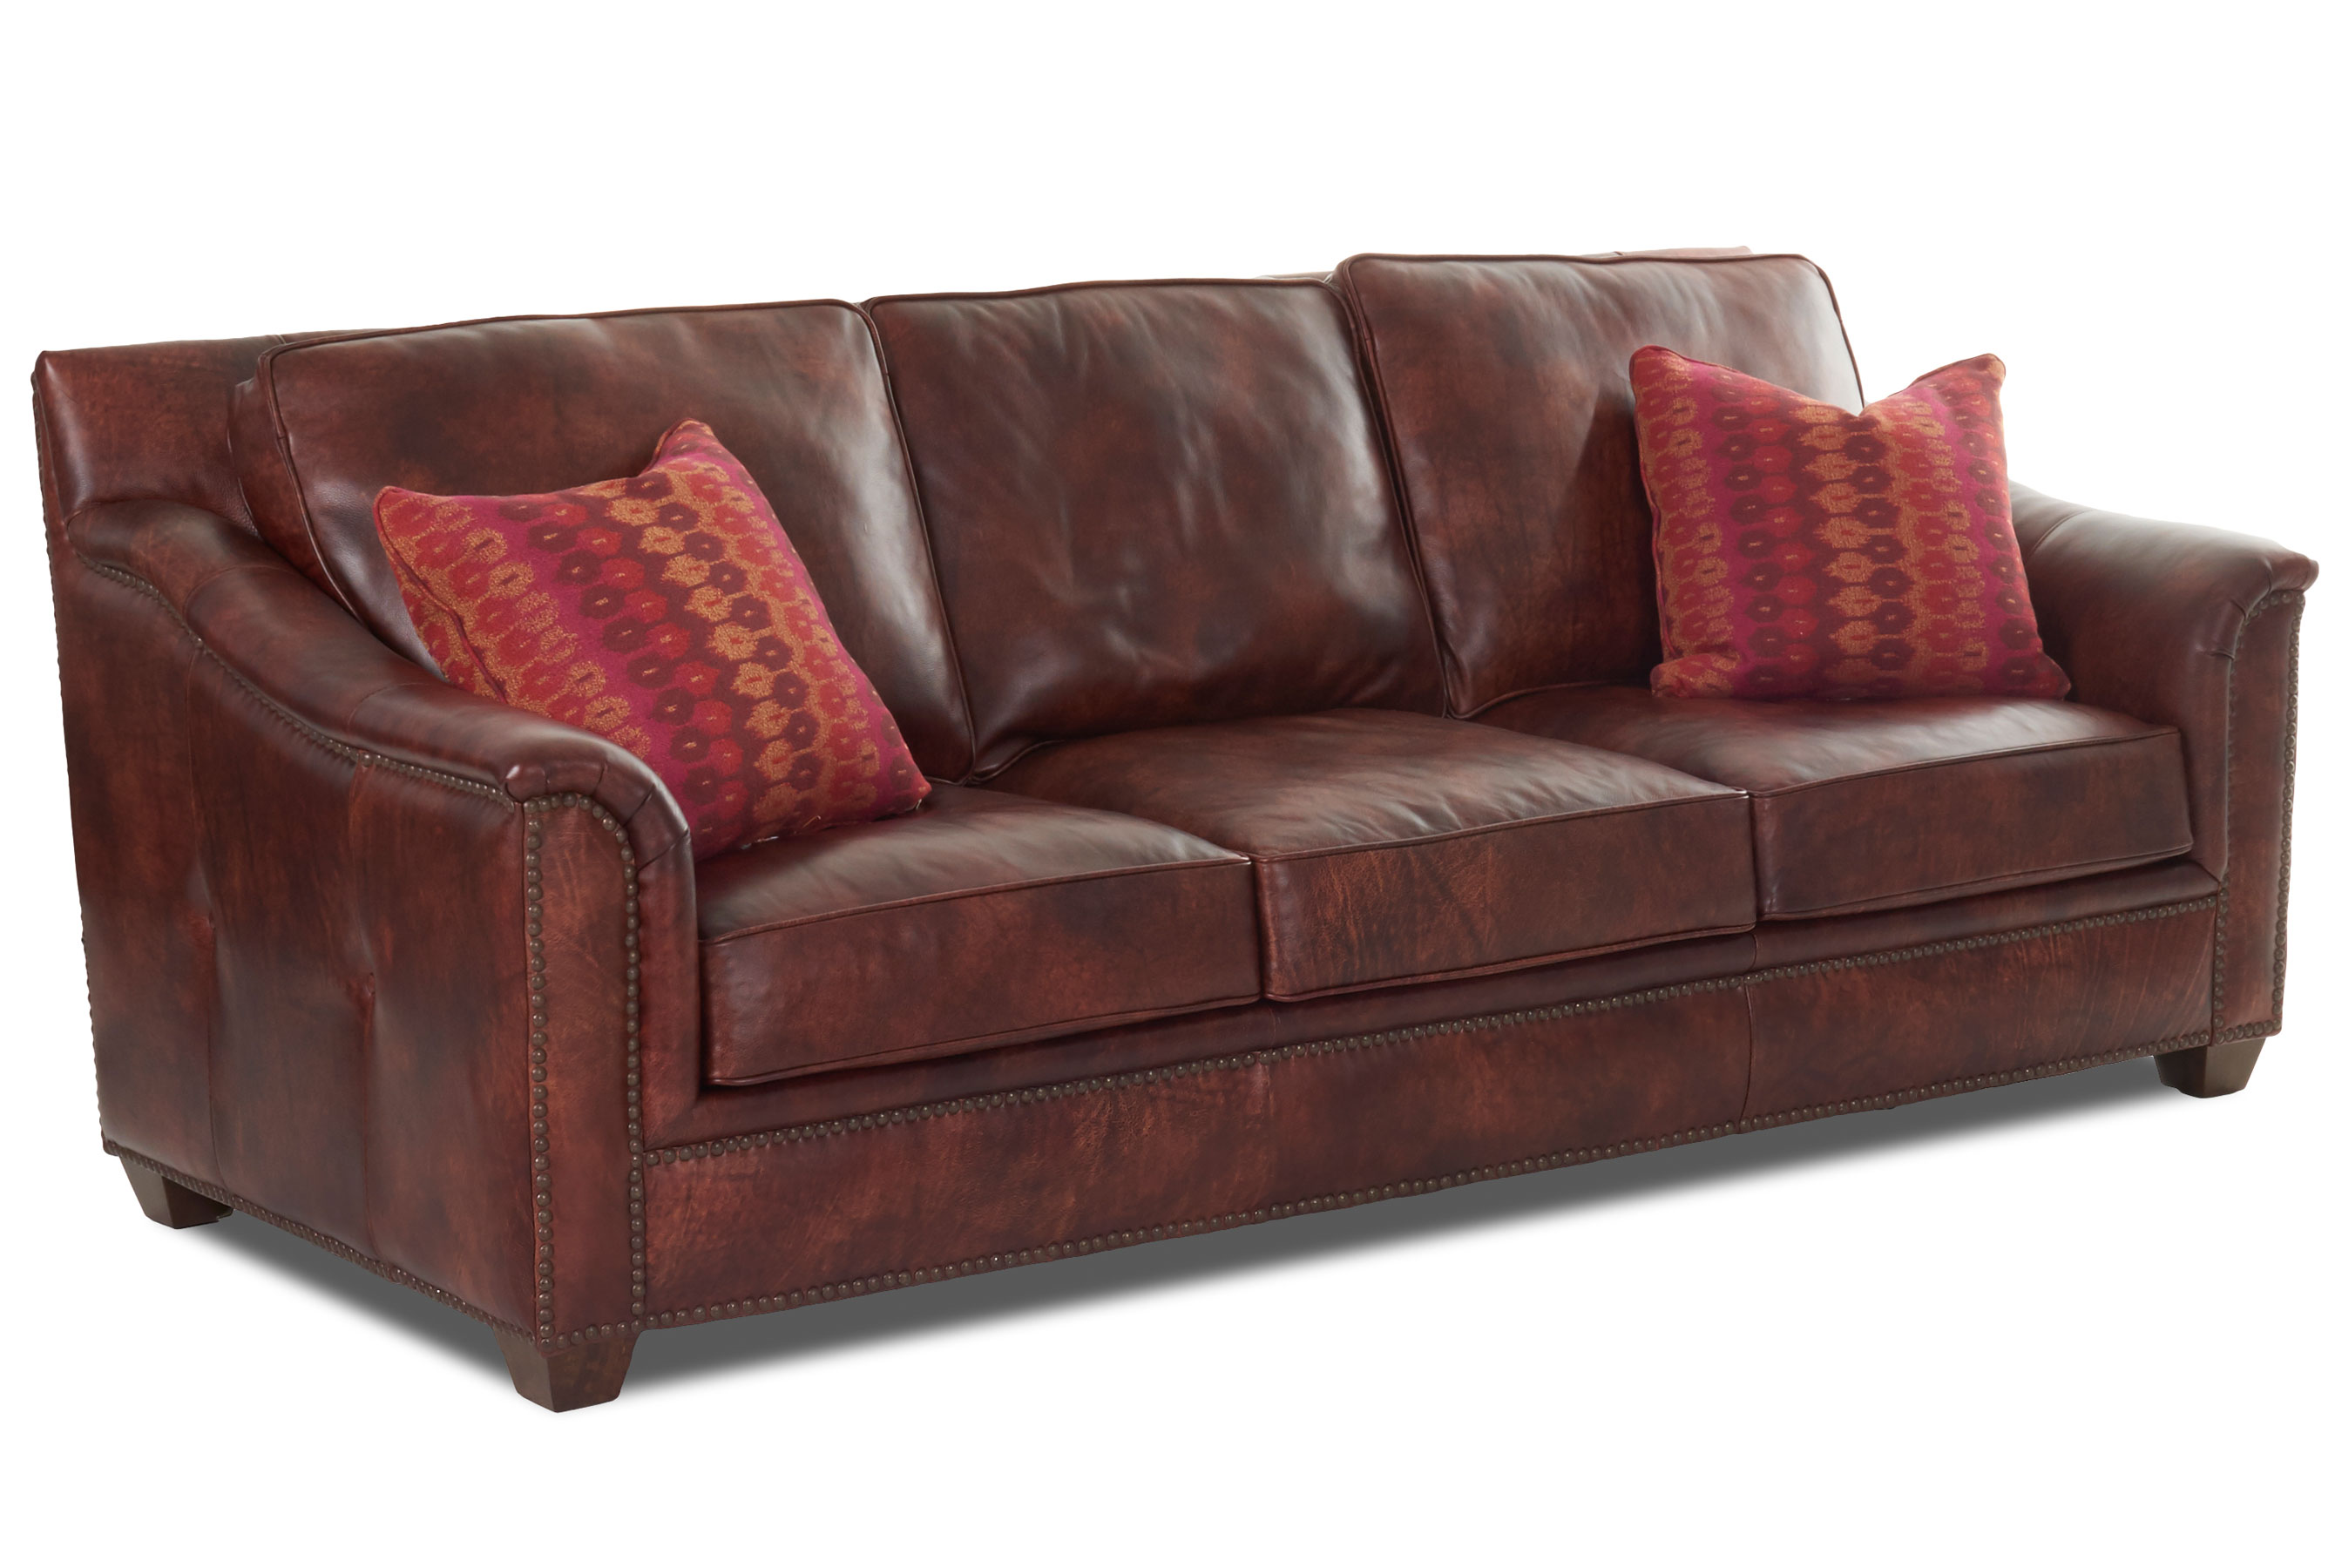 Sensational Wilkesboro 97 100 Top Grain Leather Sofas And Sectionals Caraccident5 Cool Chair Designs And Ideas Caraccident5Info